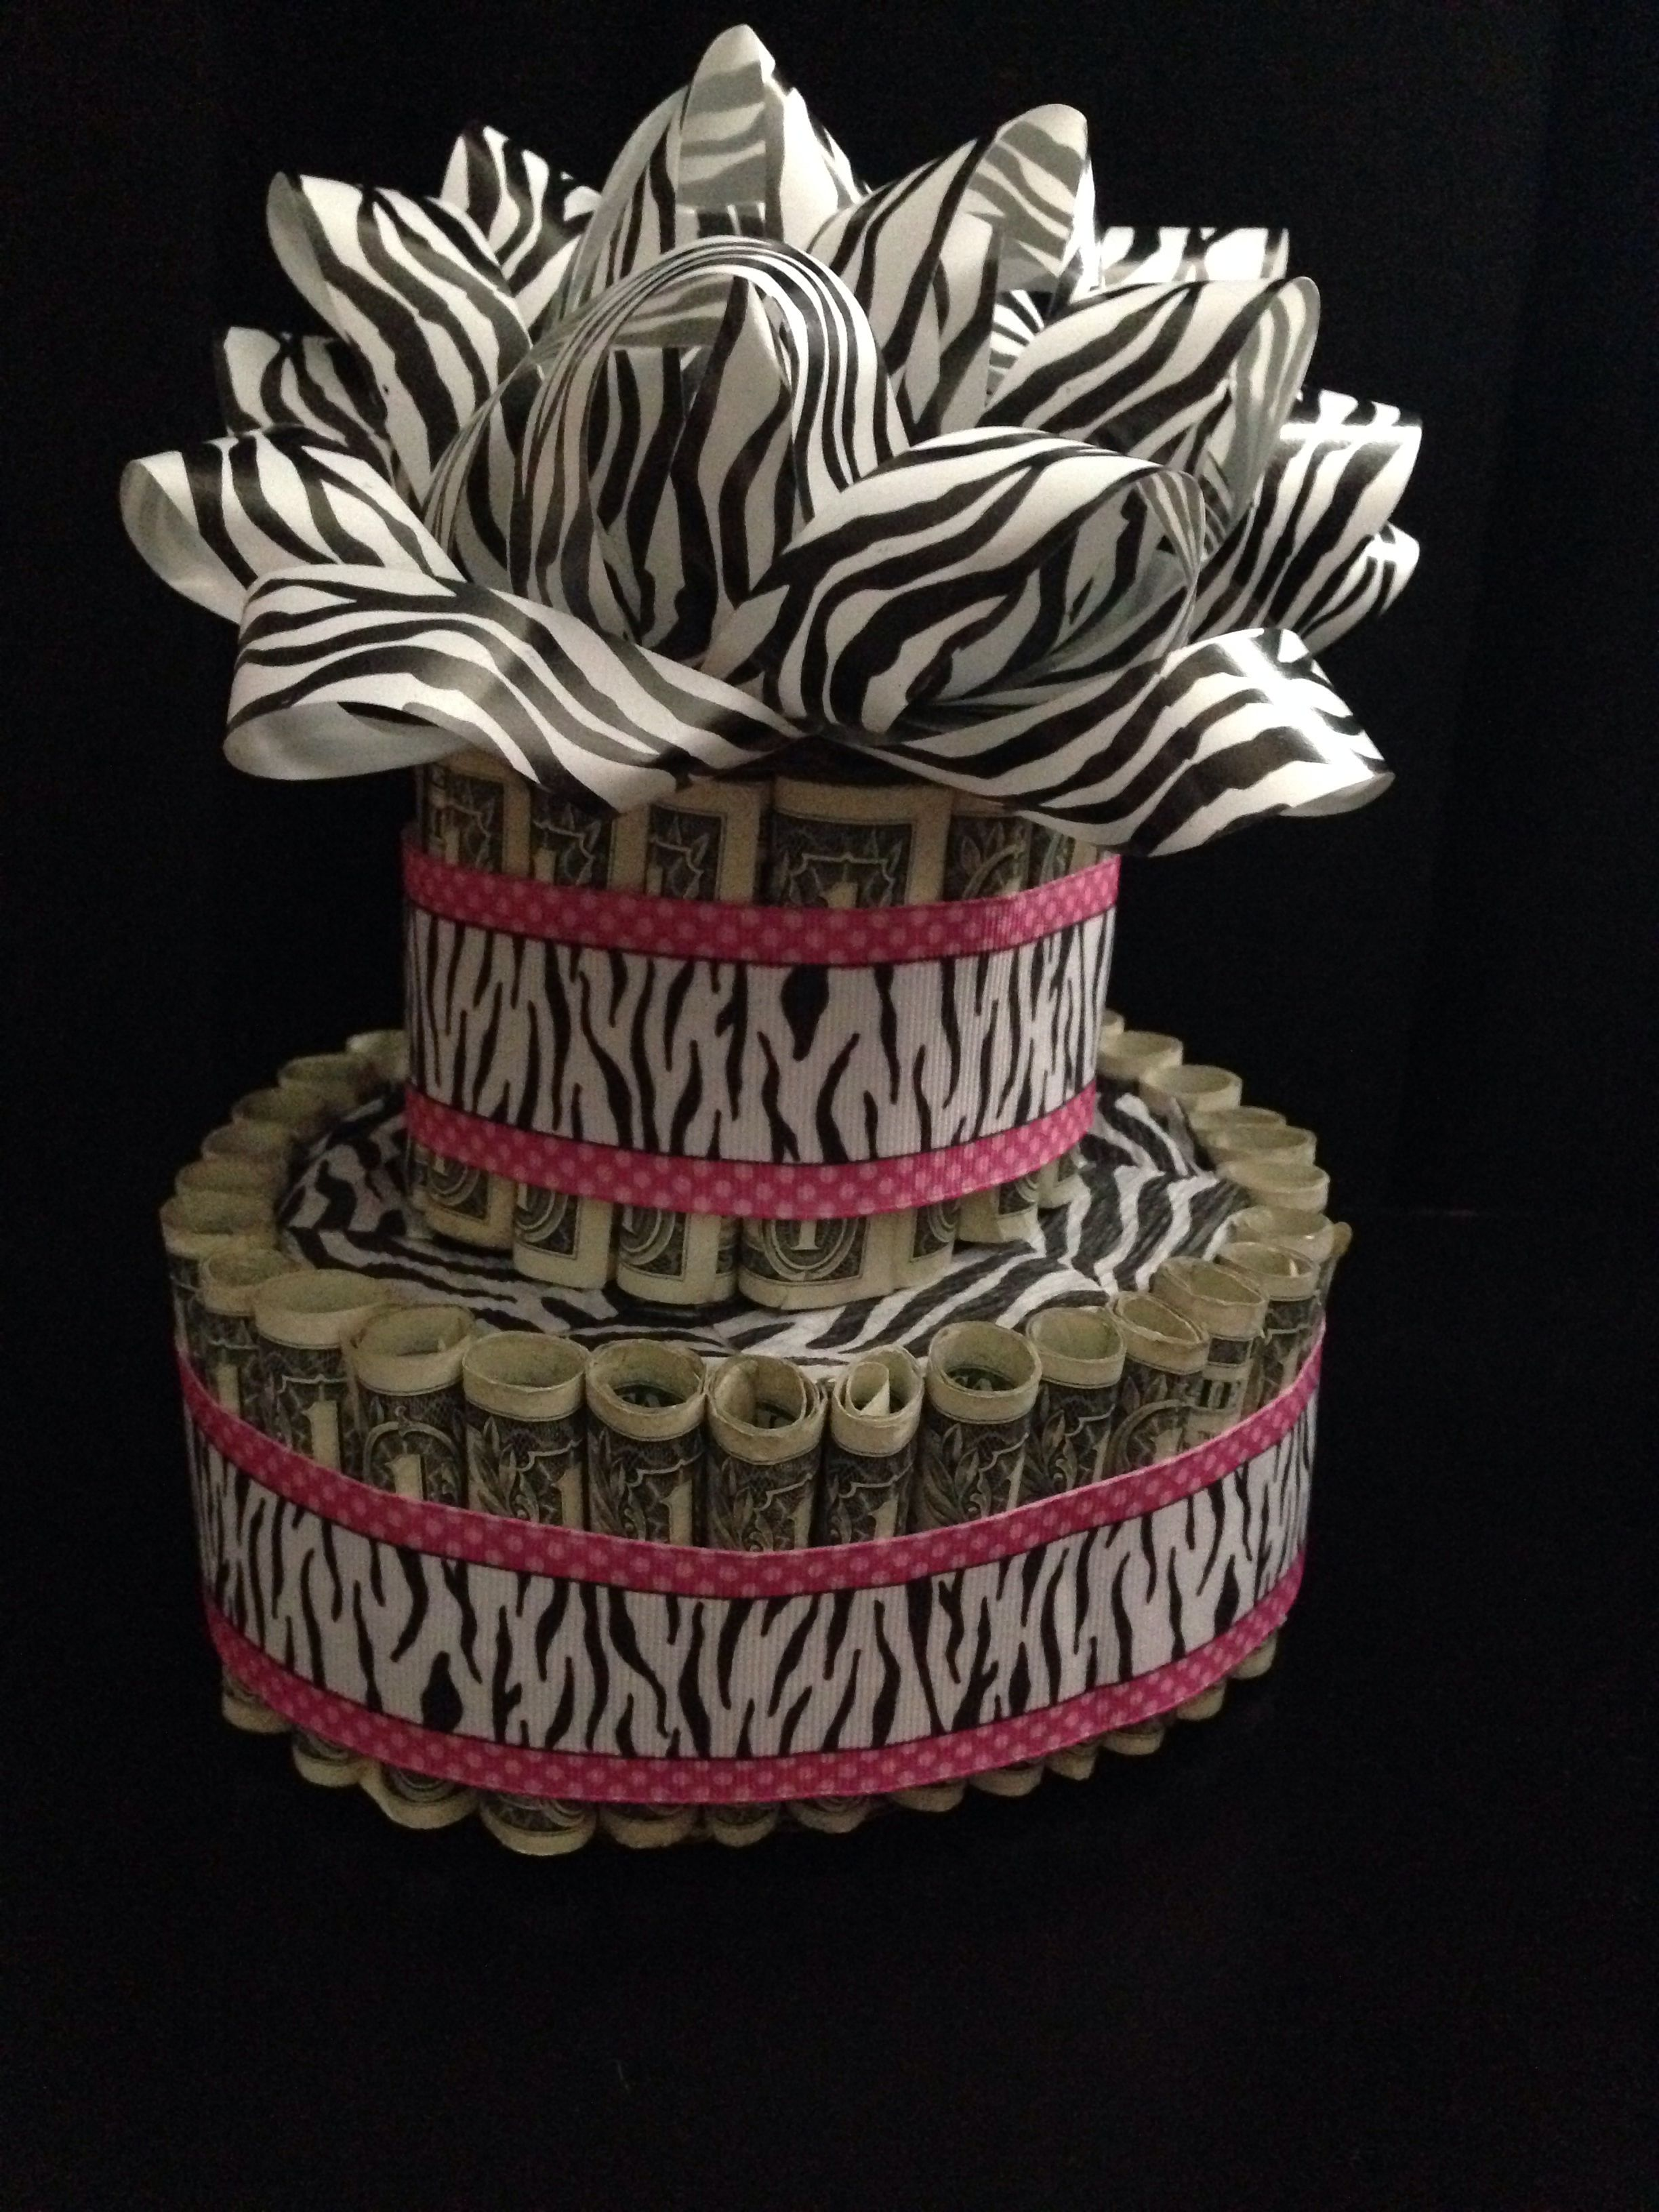 Money Birthday Cake Made this cake out of 50 one dollar bills